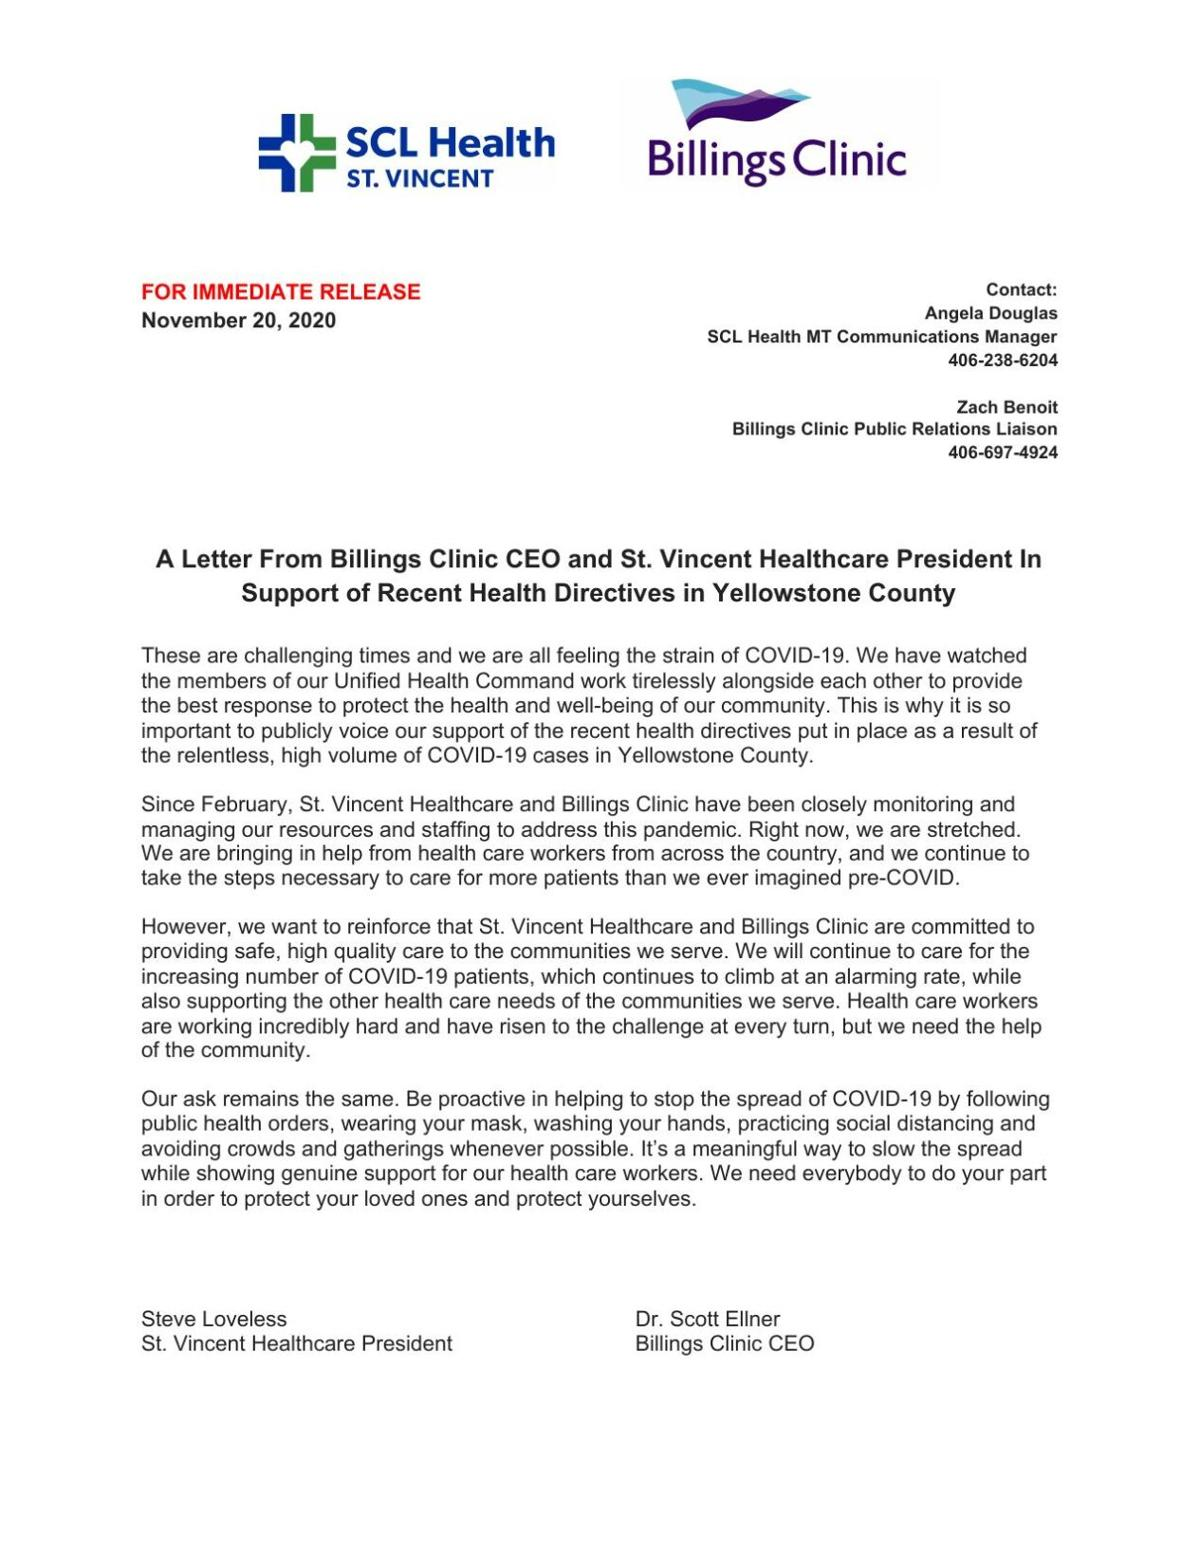 Billings Clinic and St  Vincent Healthcare Letter of Support for Health Directives